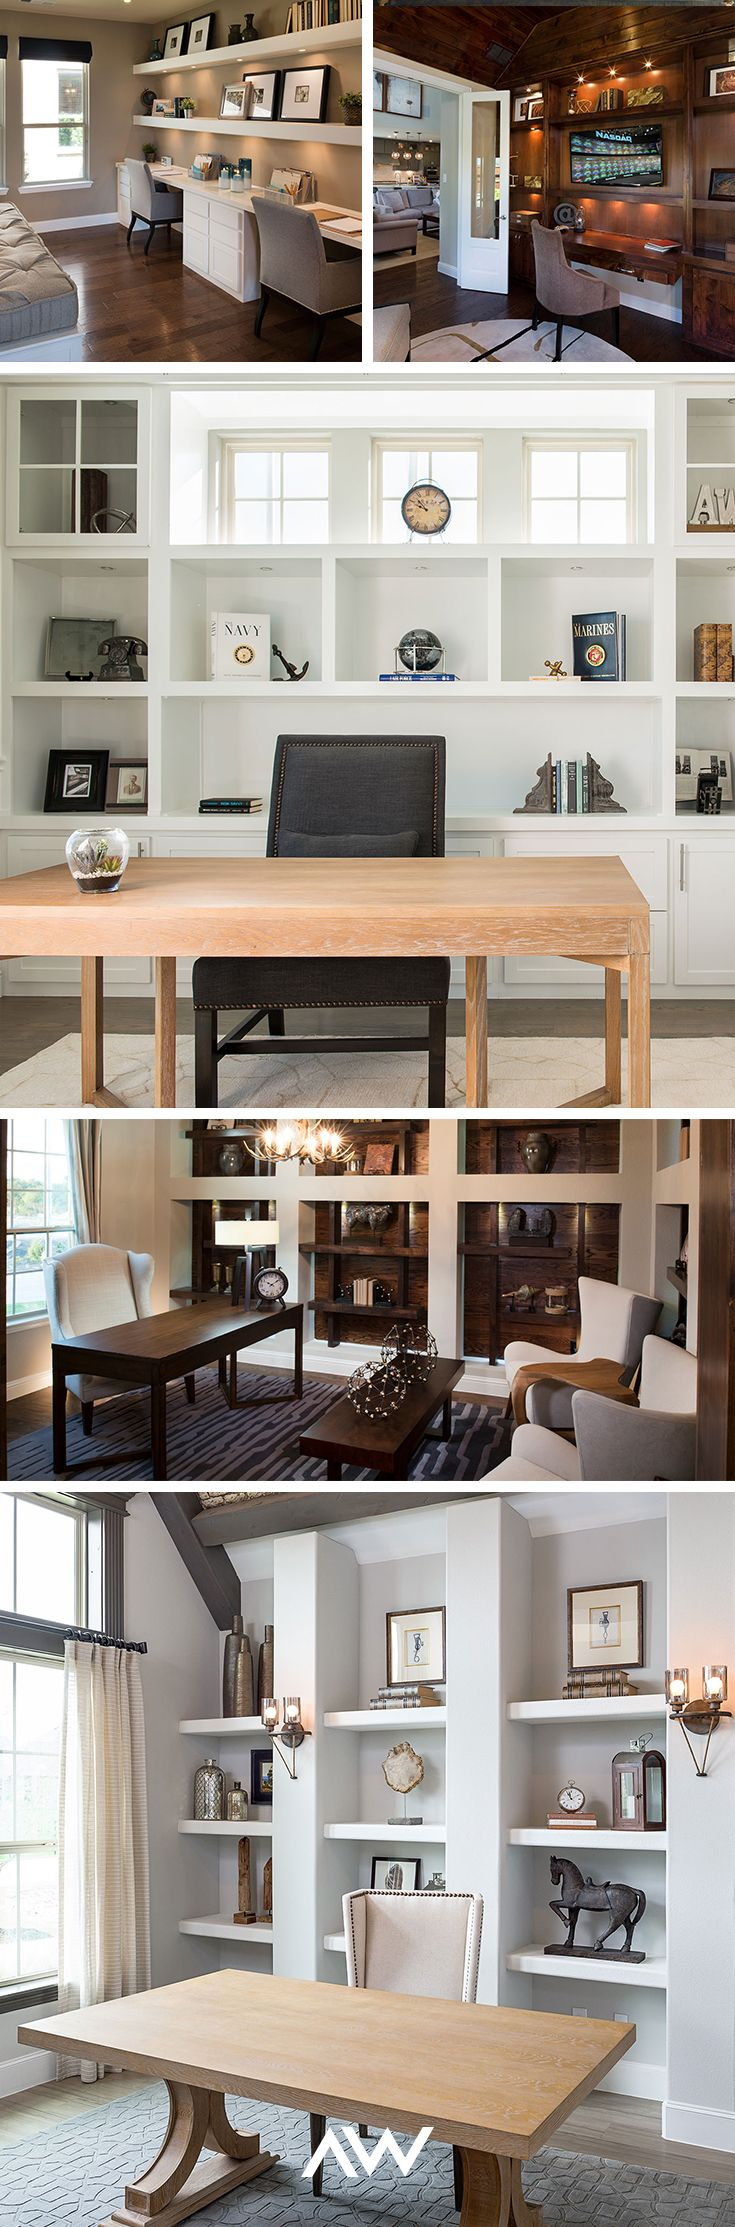 A home office or study space is a great addition to any home  With the. 75 best Offices   Study Spaces   Ashton Woods images on Pinterest